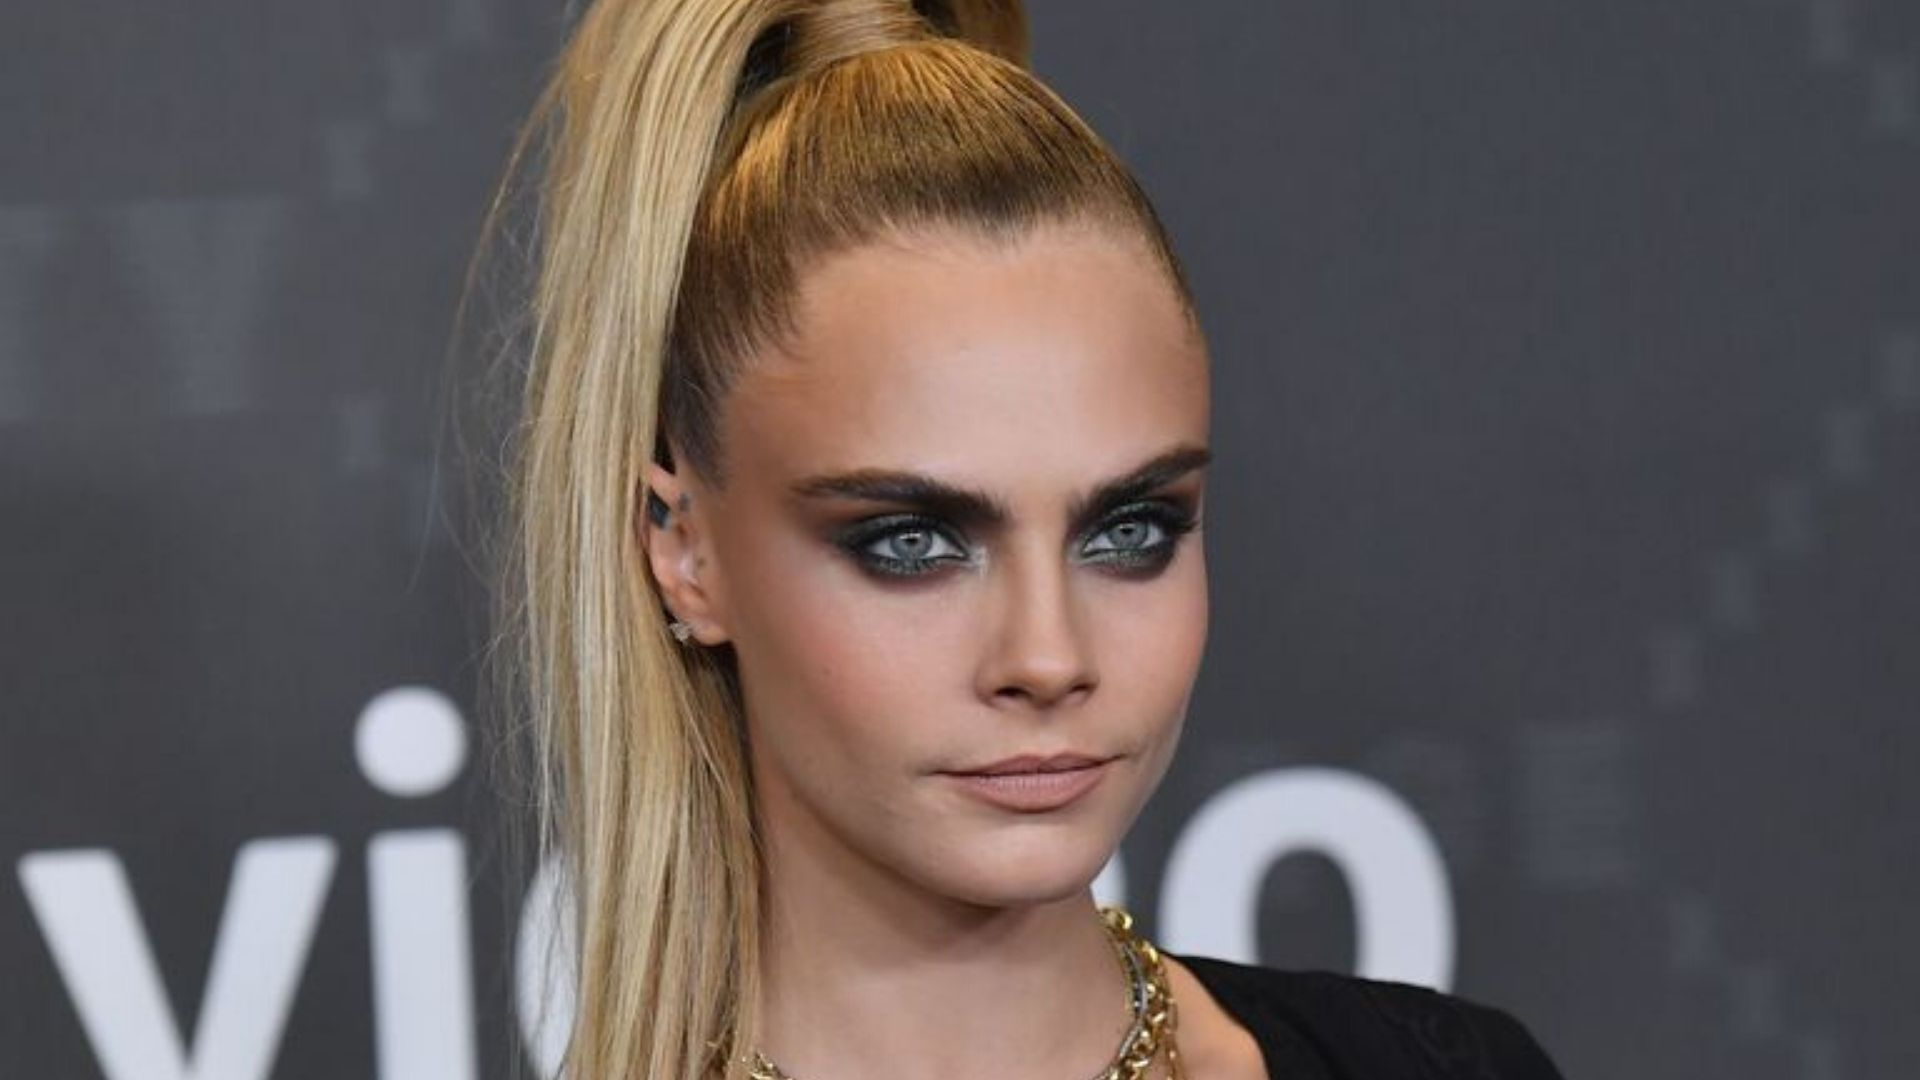 Cara Delevingne Is Set To Host Her Own Tv Show